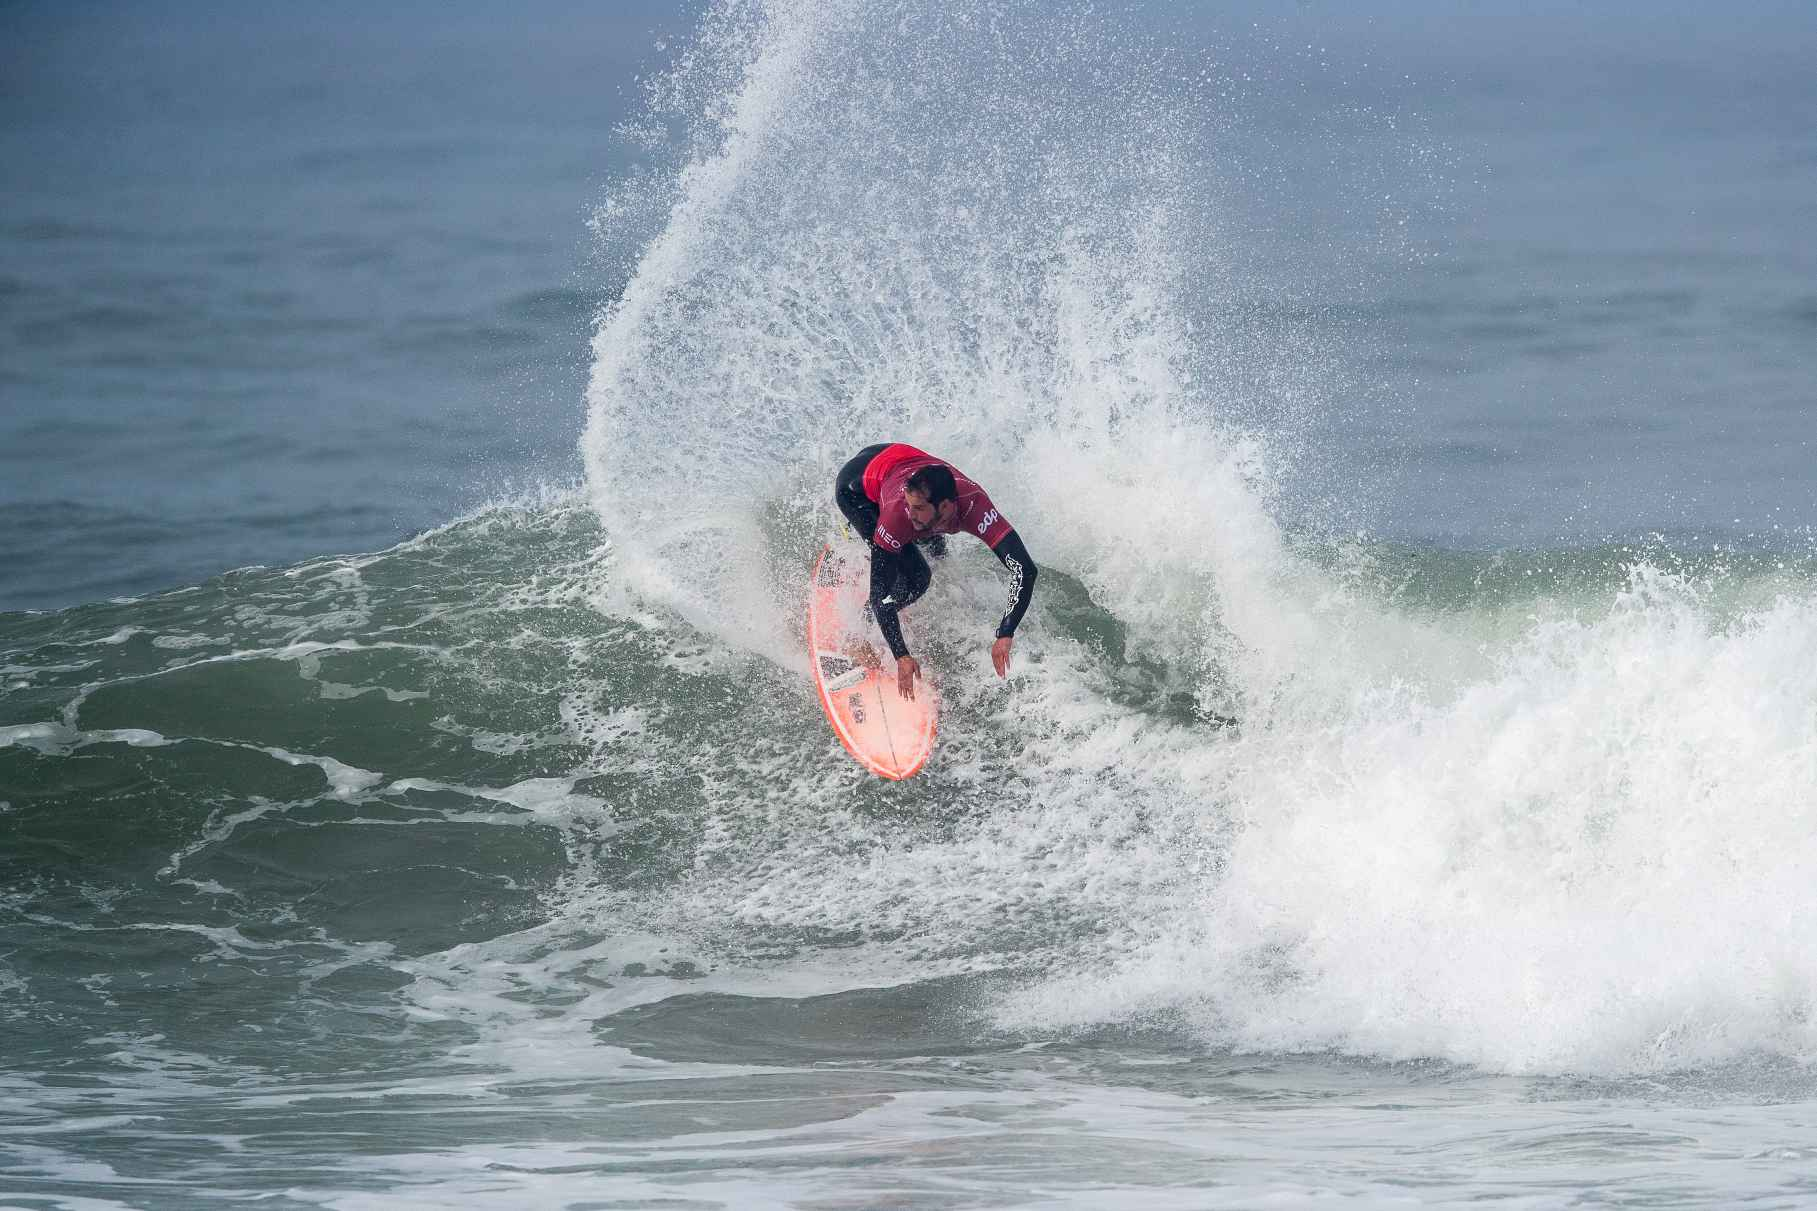 portugal wsl meo surf30 boukhiam r6343MeoPortugal20Poullenot